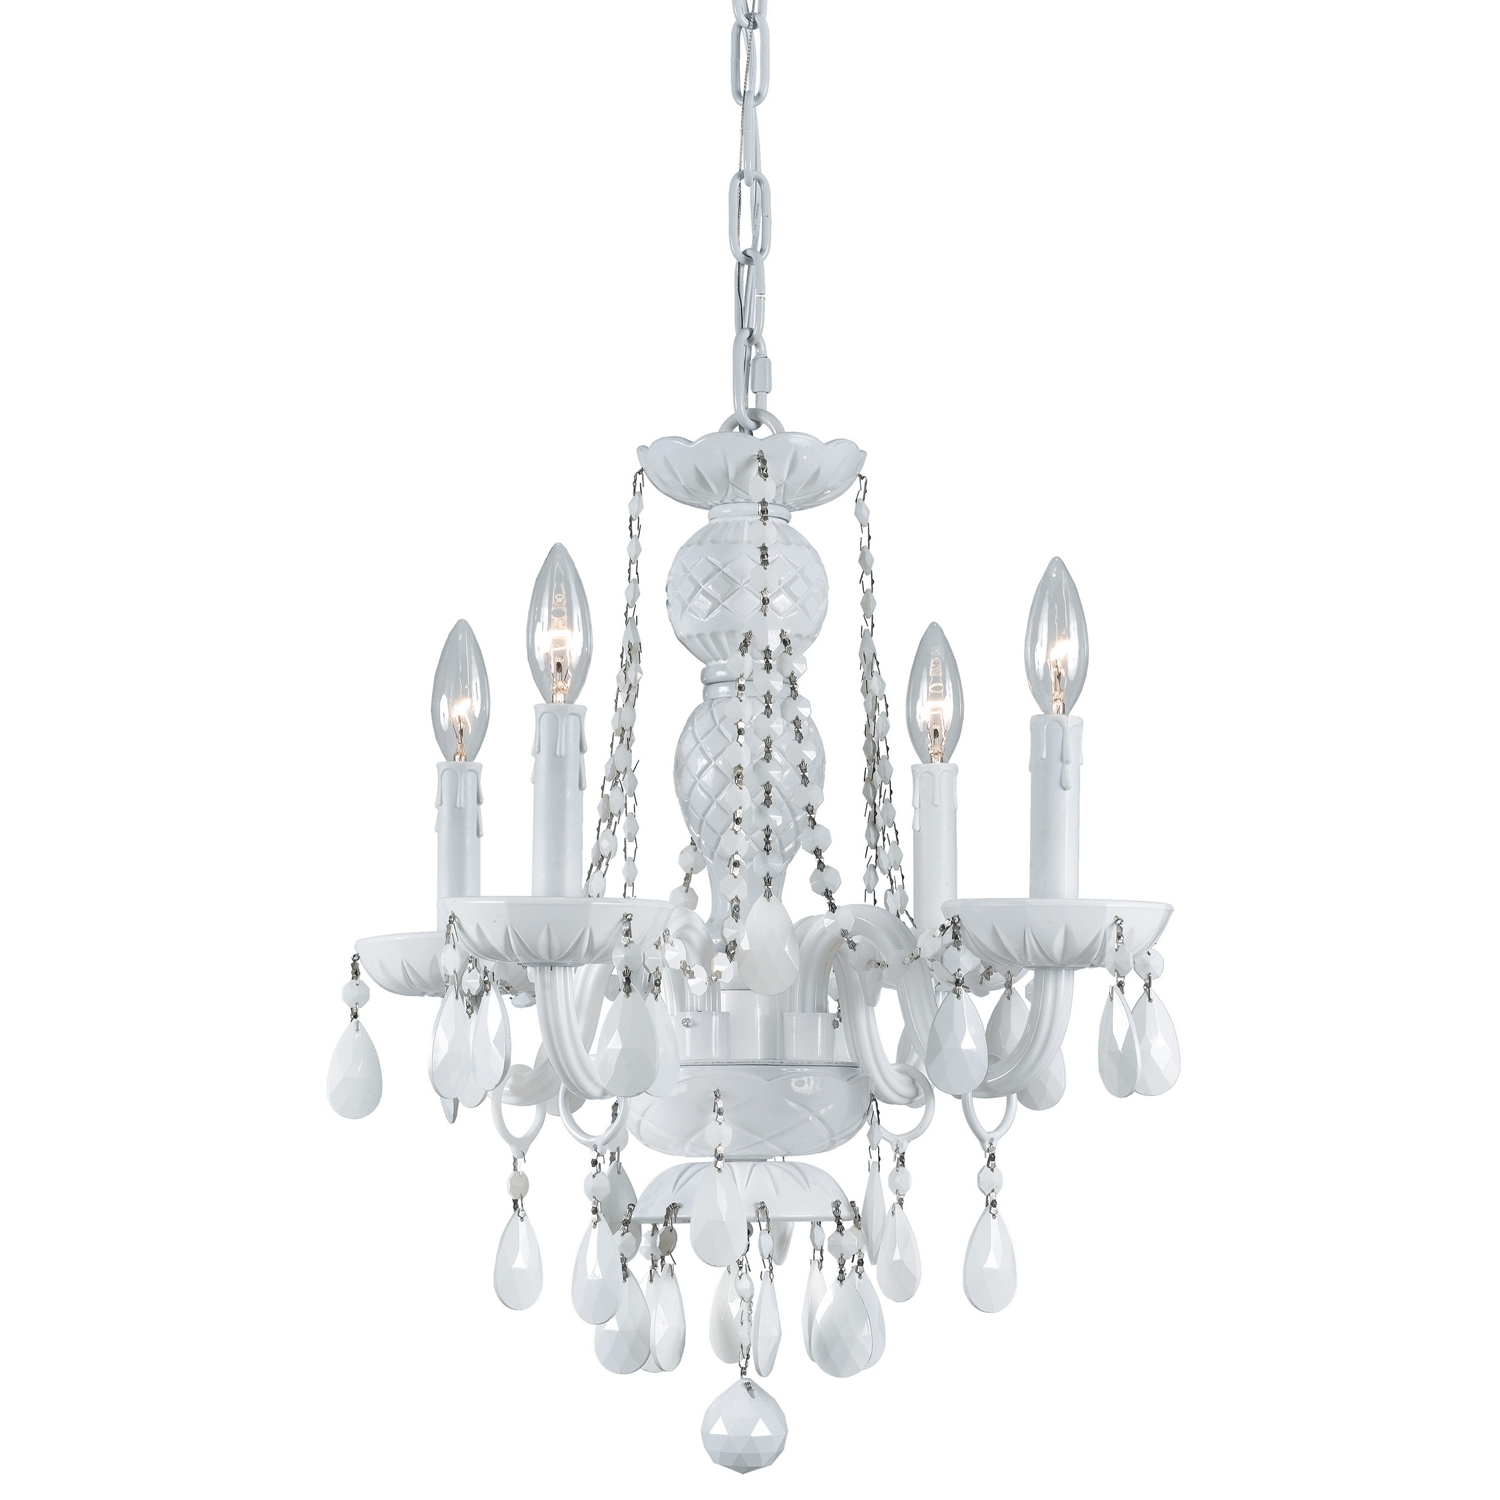 Small White Chandeliers Pertaining To Current Mini Chandeliers For Bedroom – Internetunblock – Internetunblock (View 15 of 20)